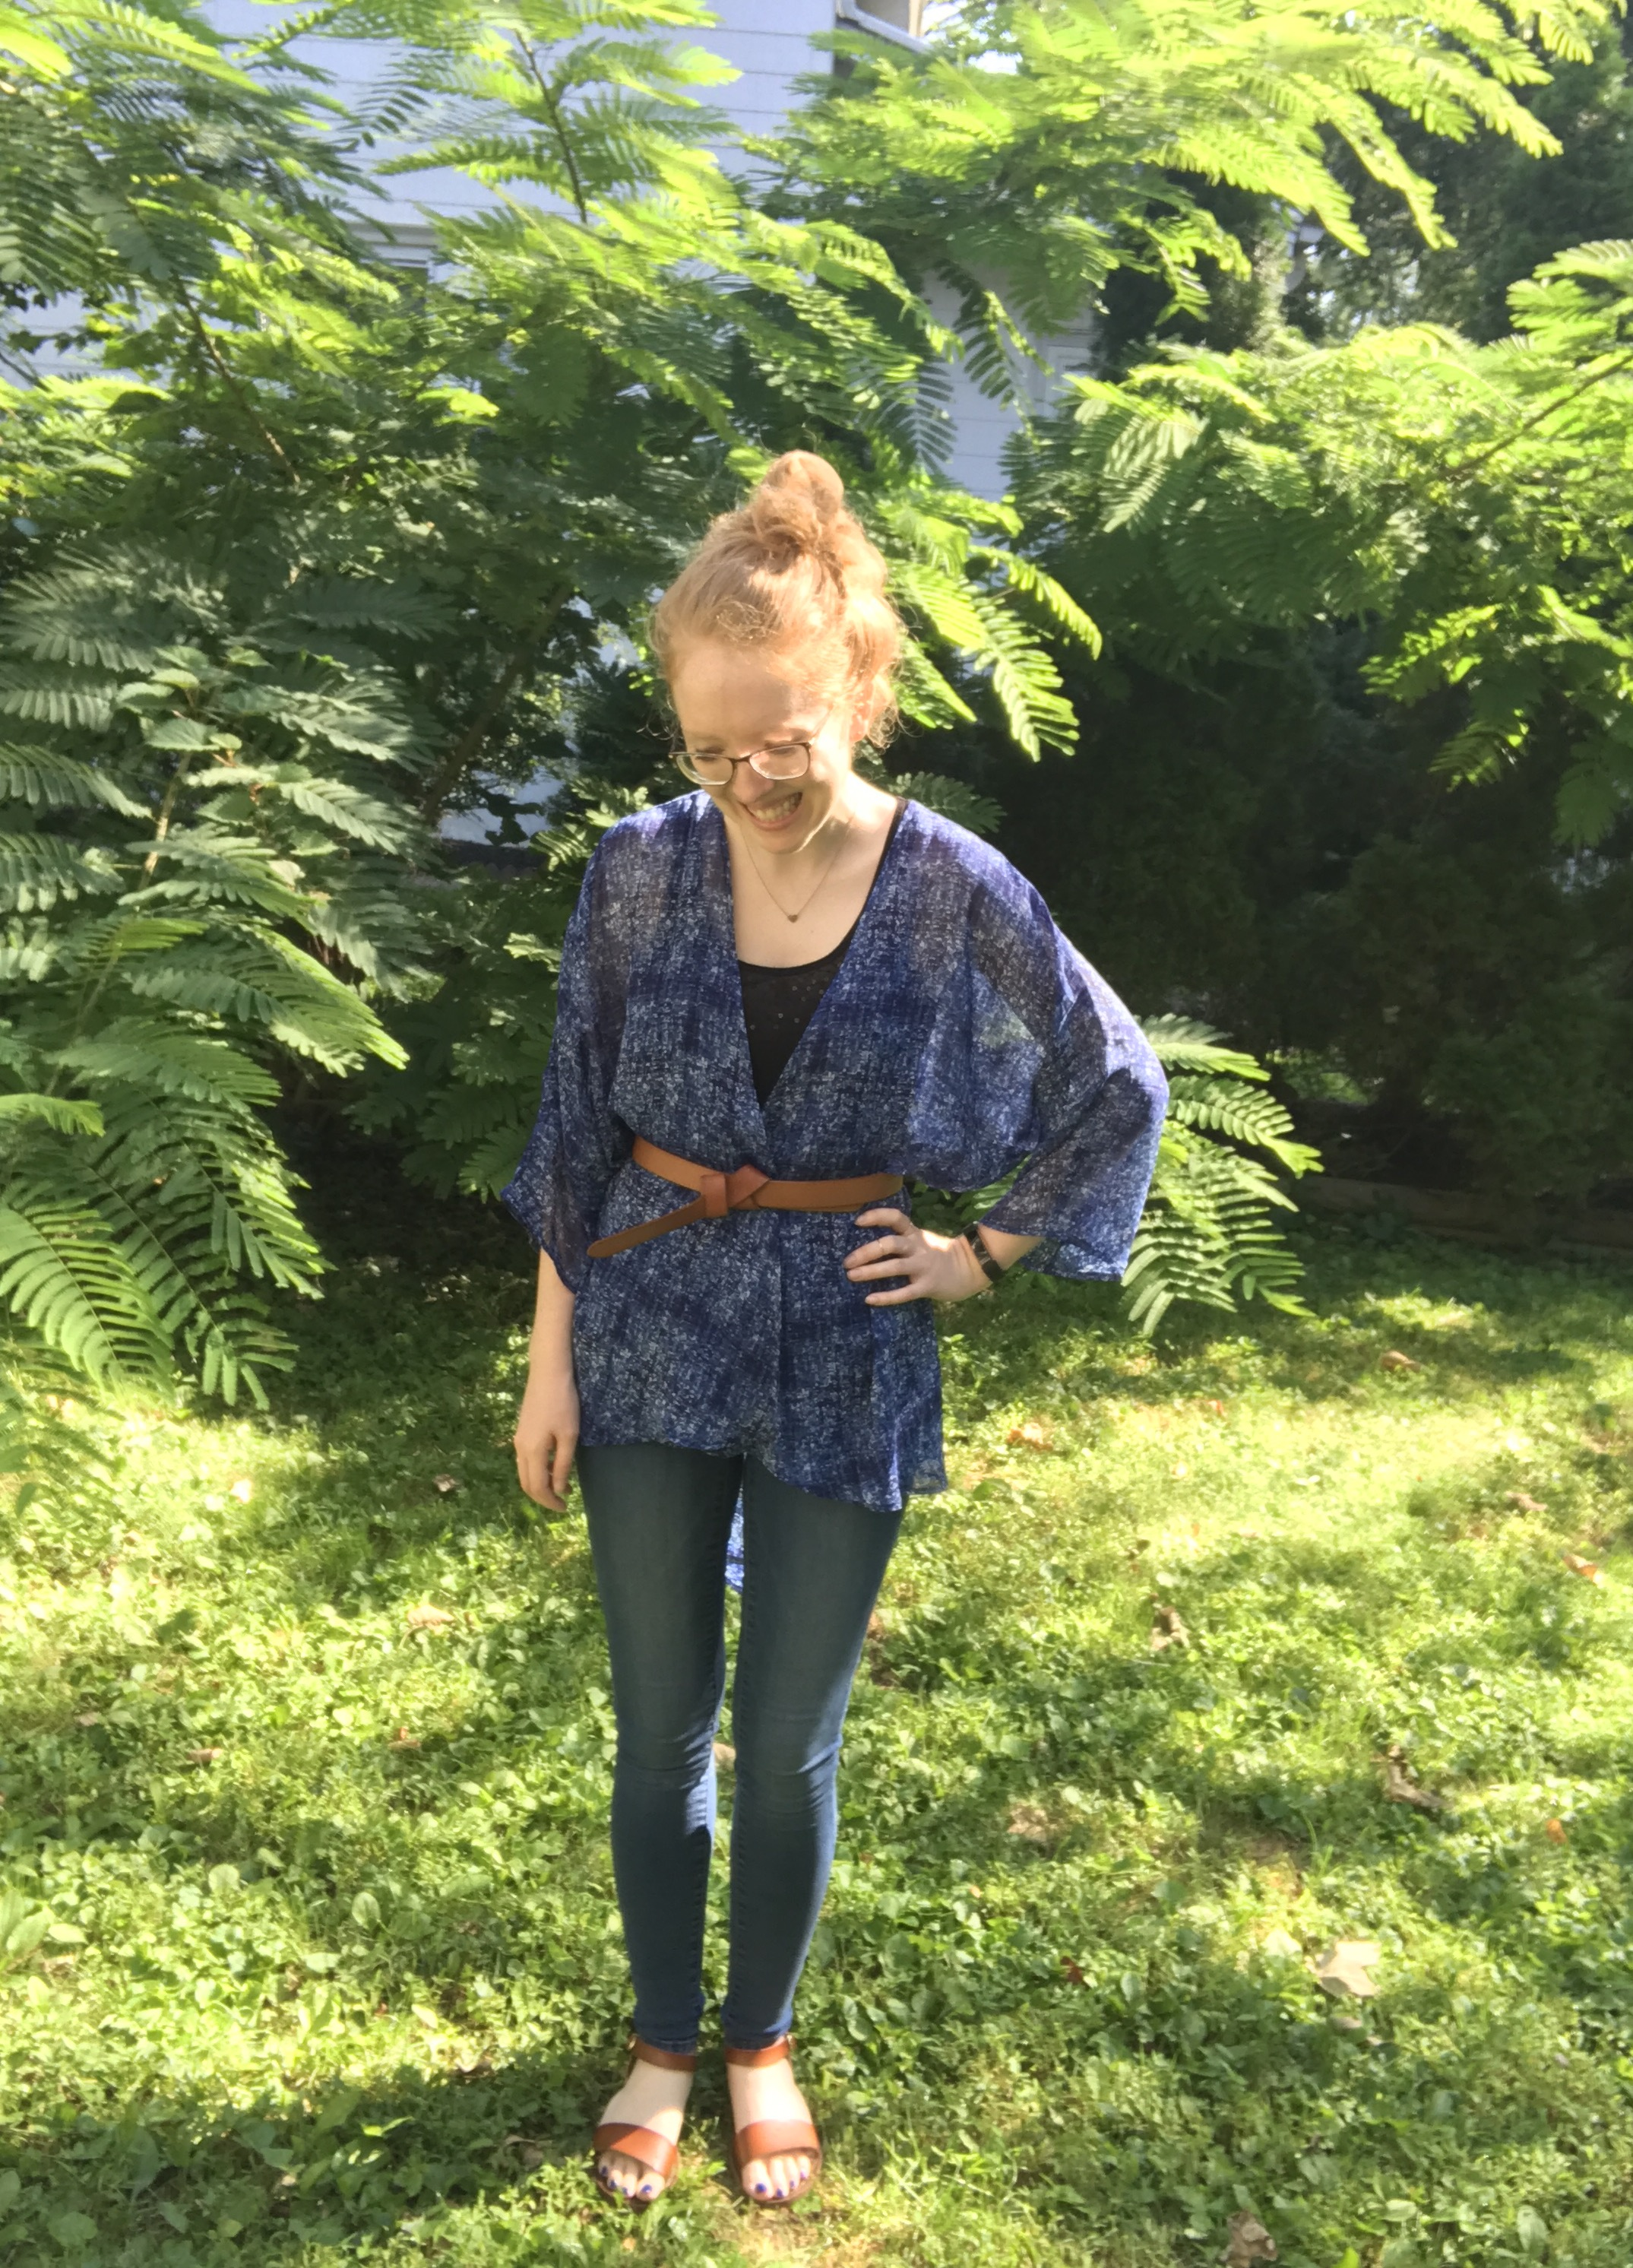 Lindsay kimono:  LulaRoe by Dre Lydon  (2017) | Tank: Gap (thrifted 2011) | Jeans: Gap (2014) | Sandals:  Target  (2017) | Belt: Loft (2014) | Necklace: Stella & Dot (Poshmark 2017)